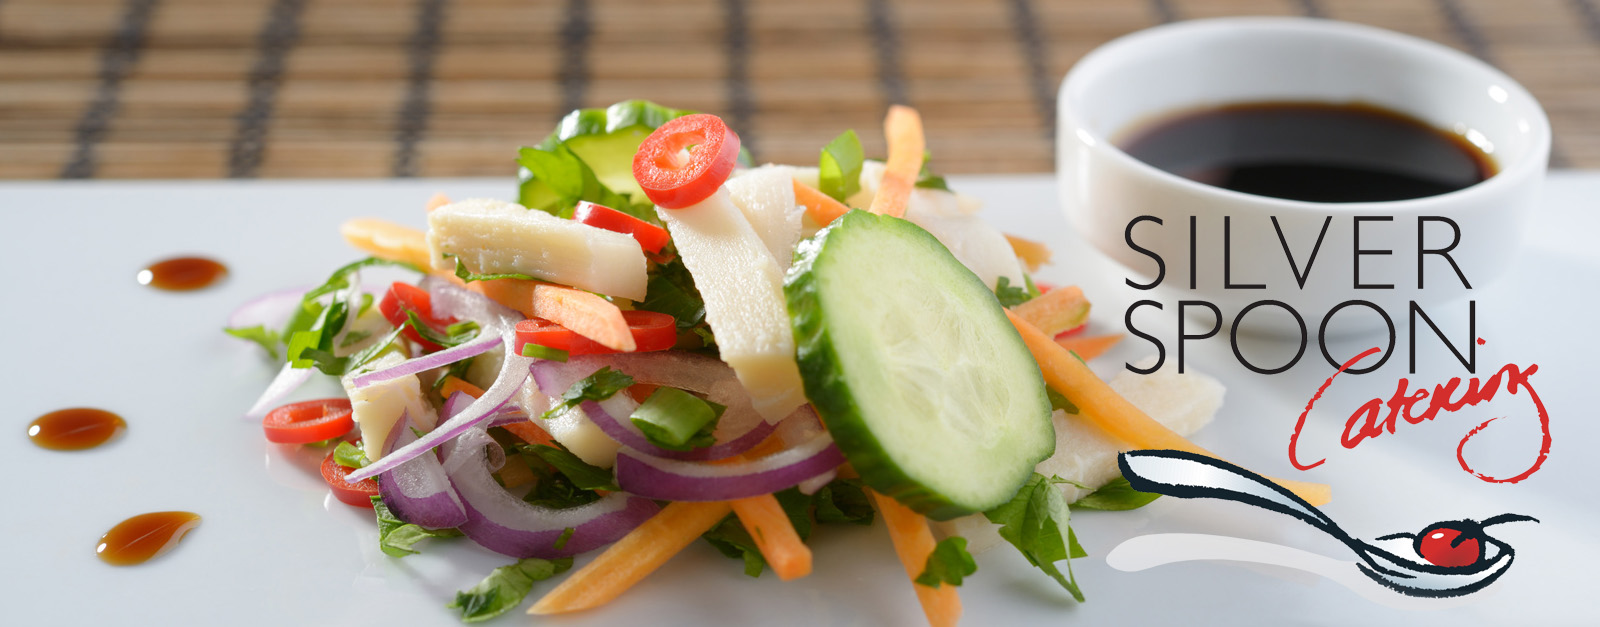 gourmet catering for events and functions in cape town